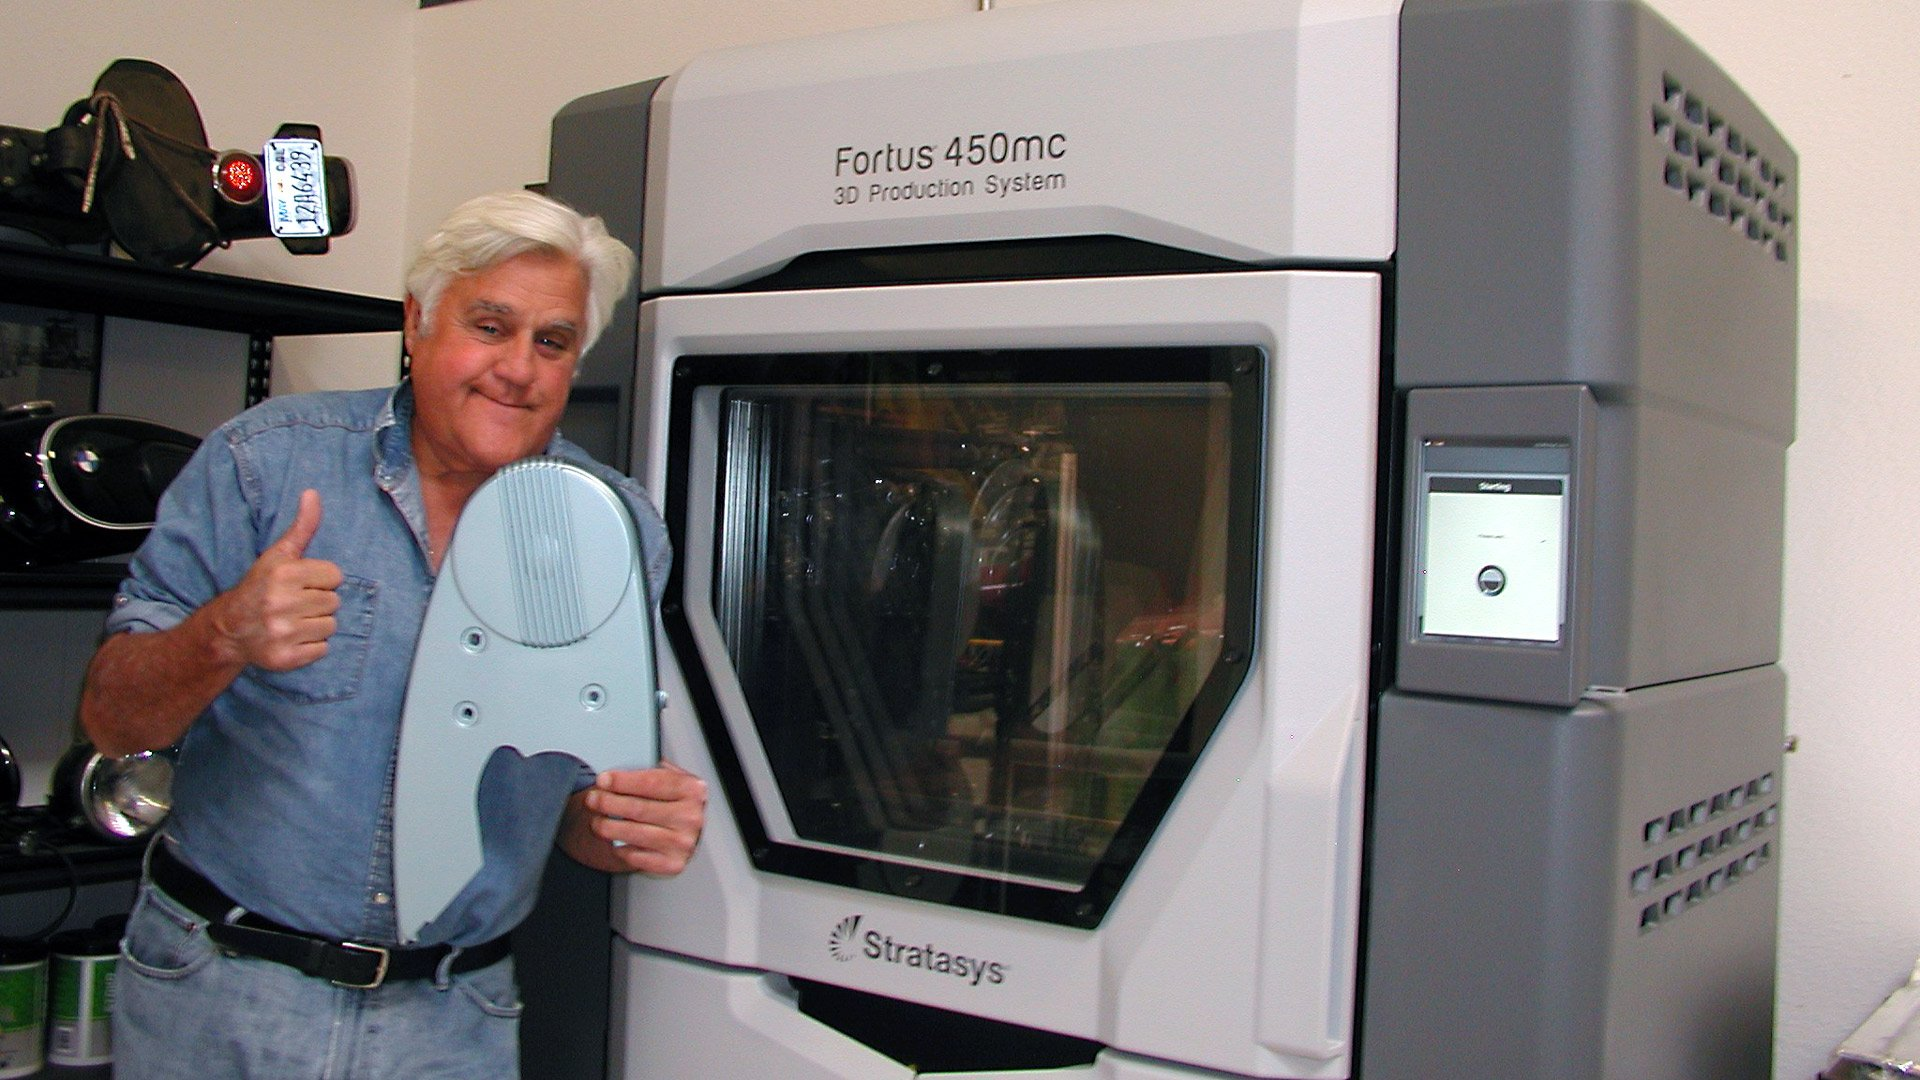 Performance Printing Stratasys Partners with Comedian Jay Leno for On-Demand Manufacturing Services - All 3DP